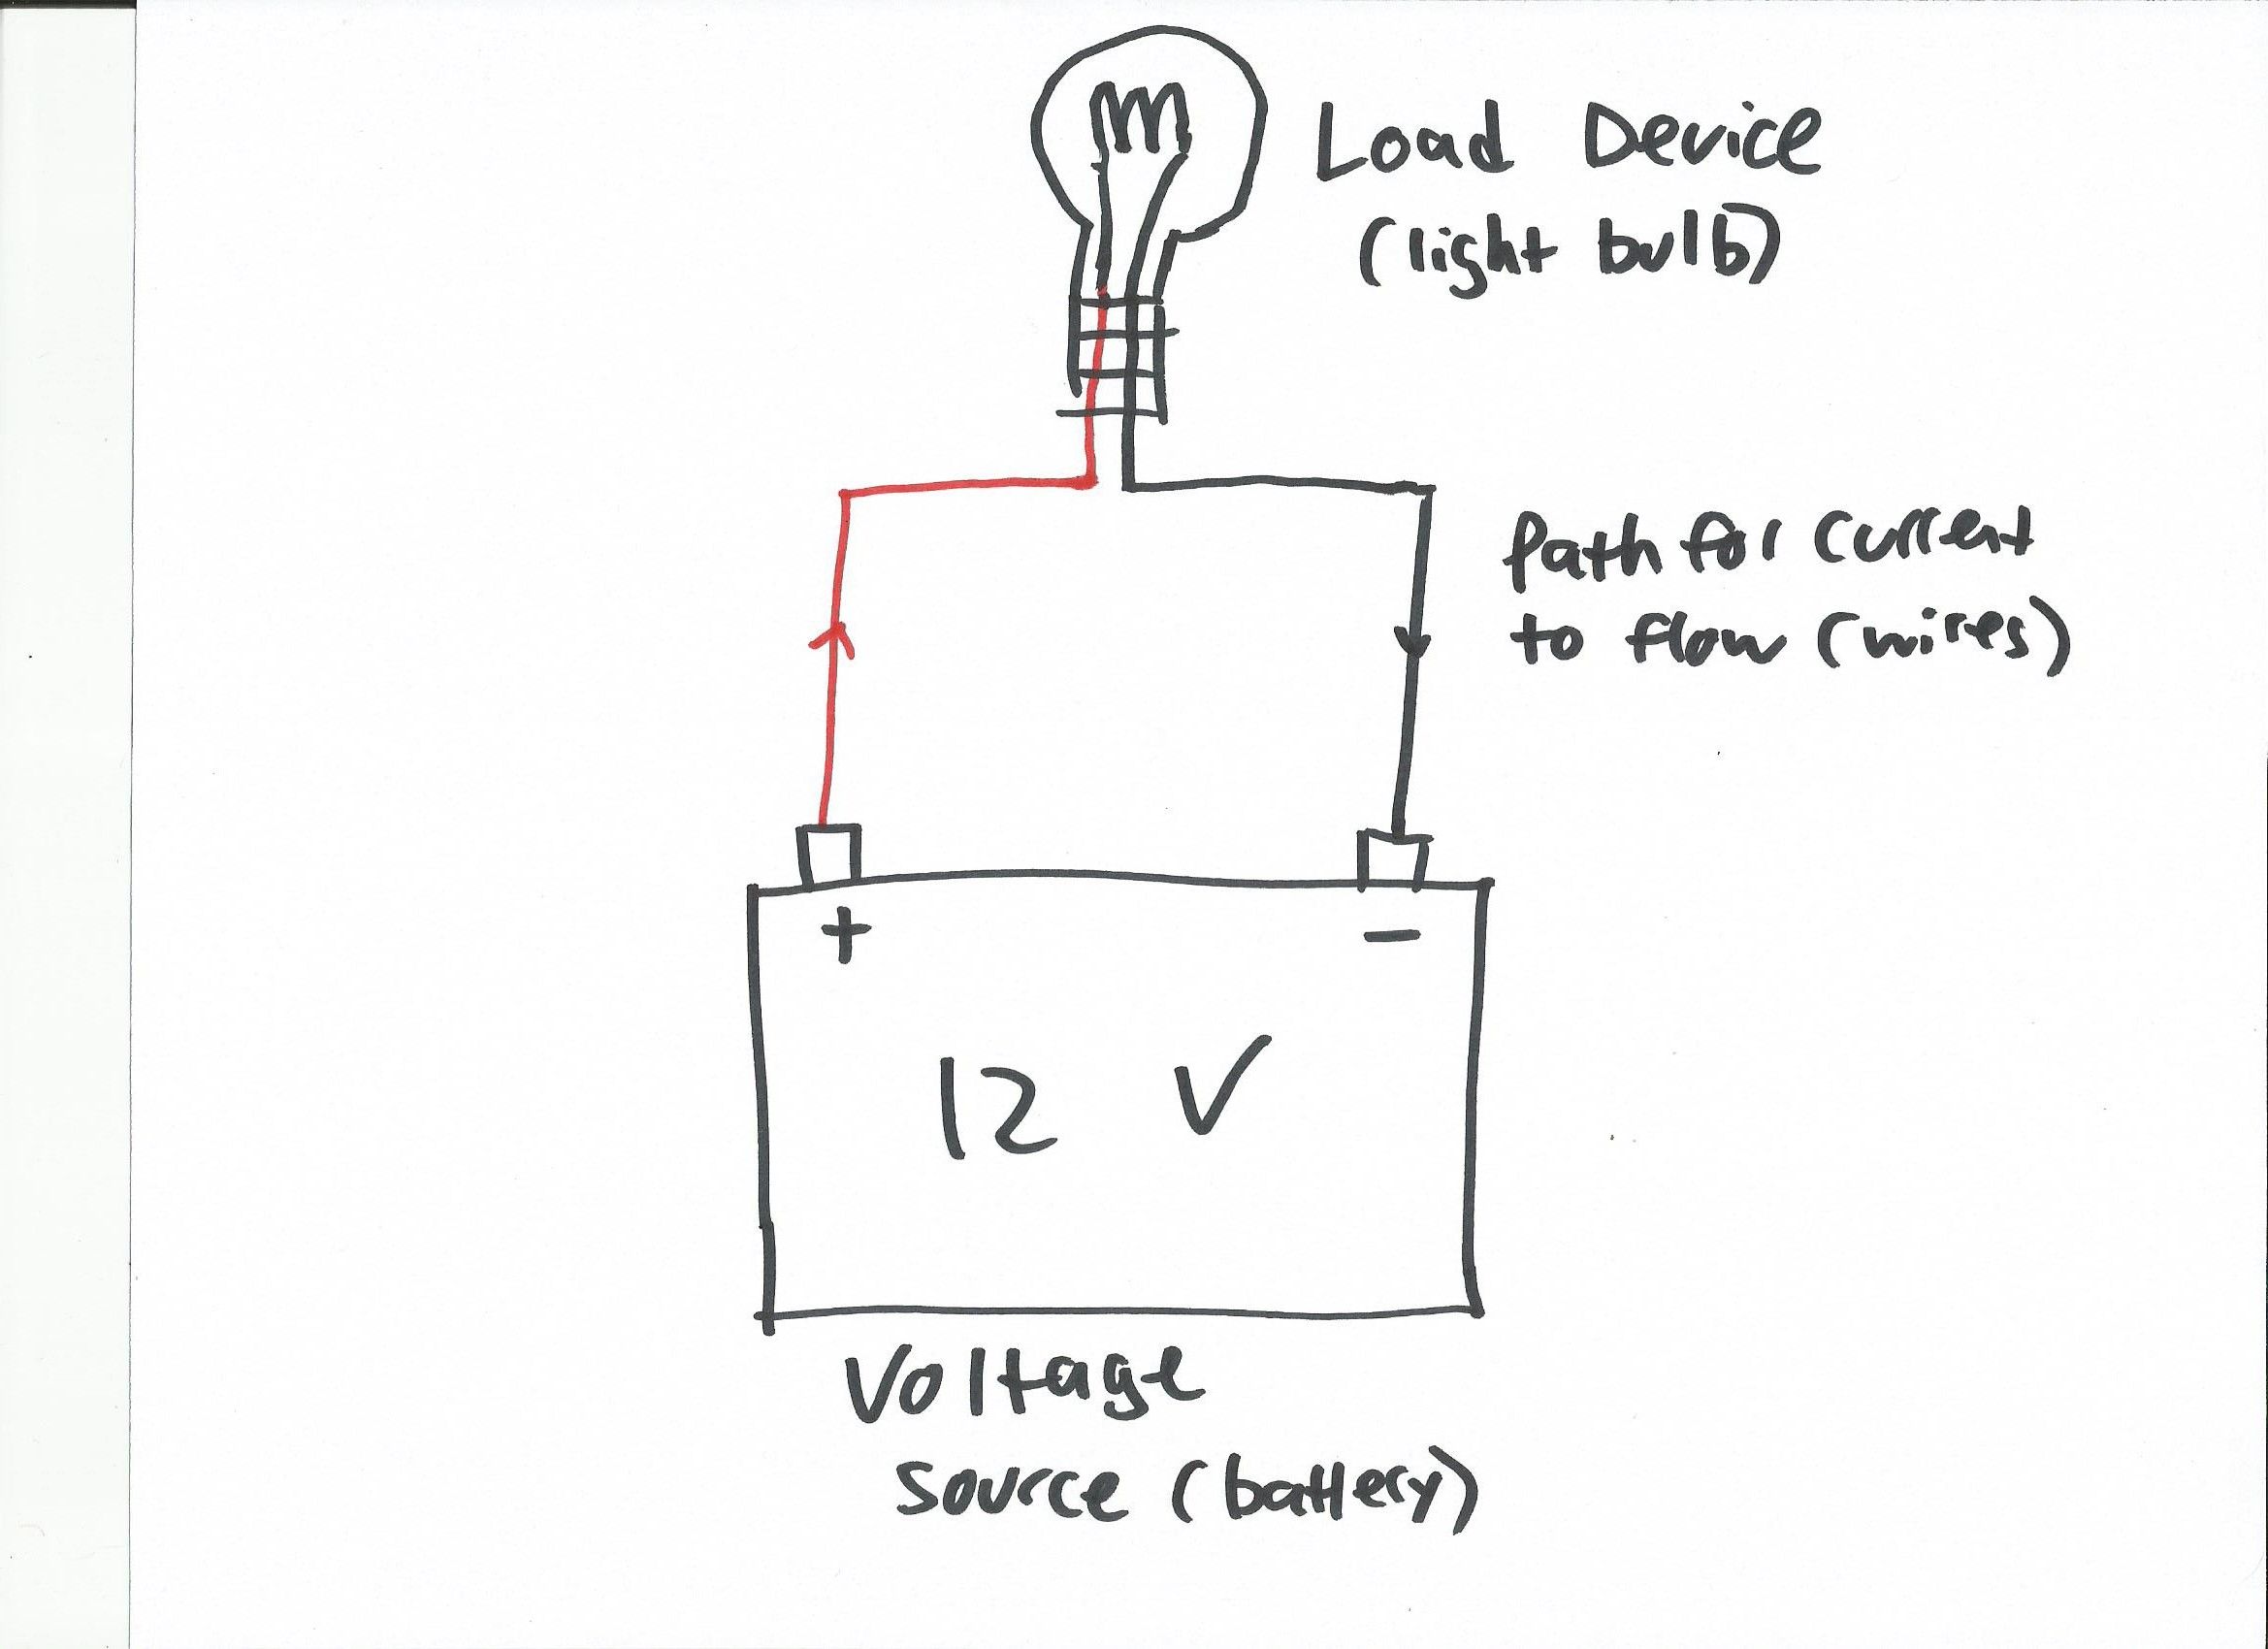 A simple circuit, showing the voltage source, the load device, and the path for current to flow.